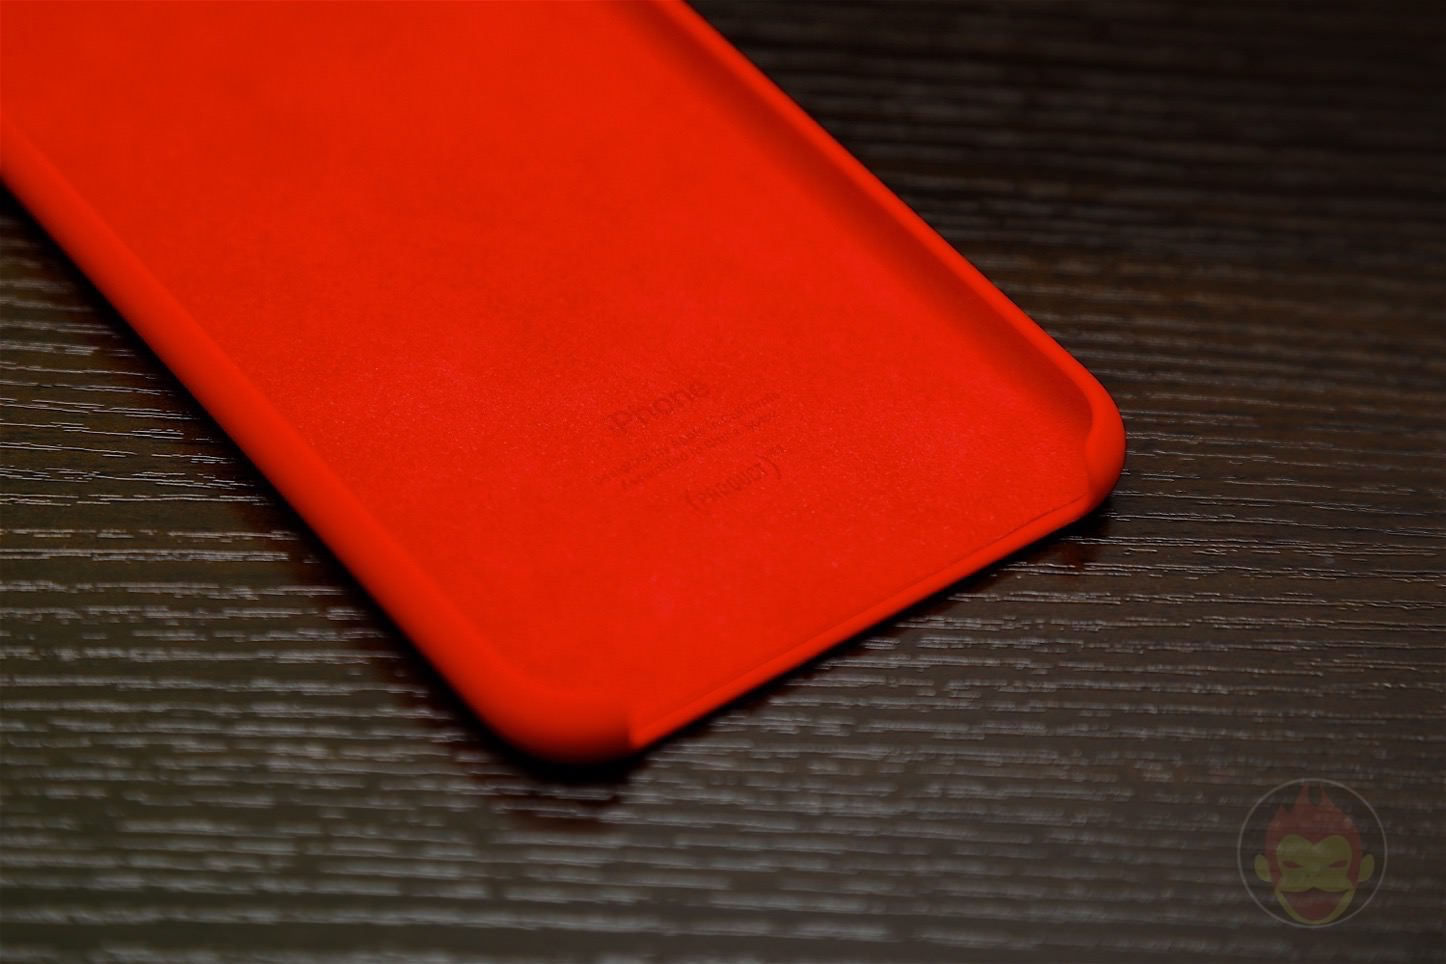 iPhone-7-Plus-Silicone-Case-Product-Red-02.jpg